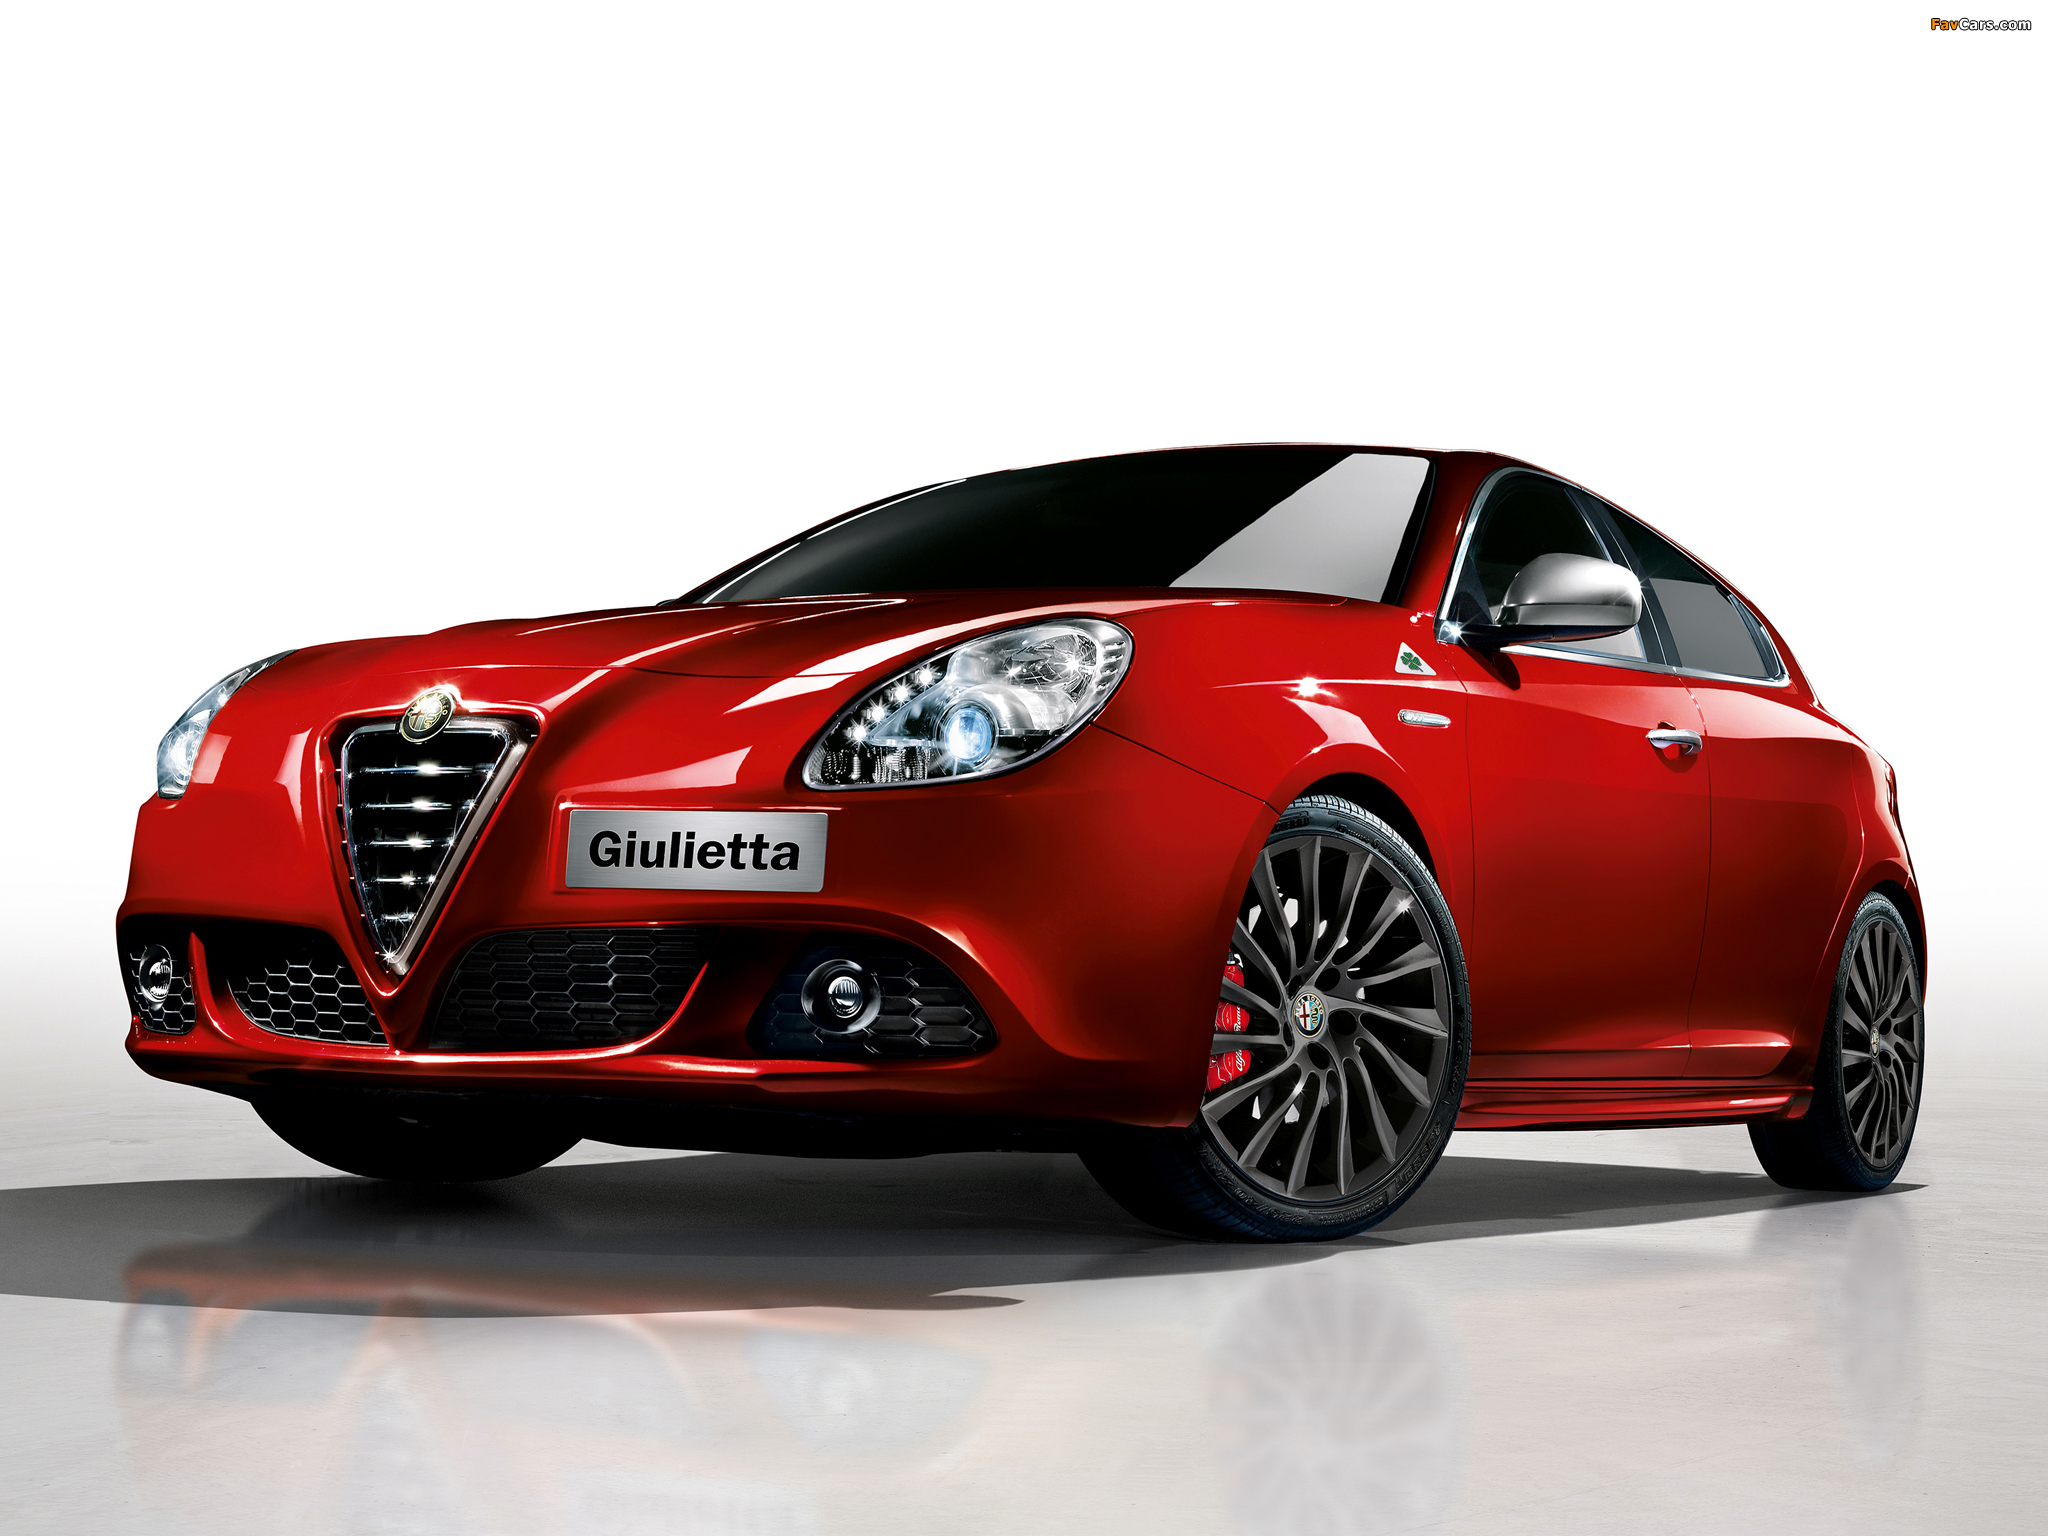 alfa romeo giulietta images start 300 WeiLi Automotive Network